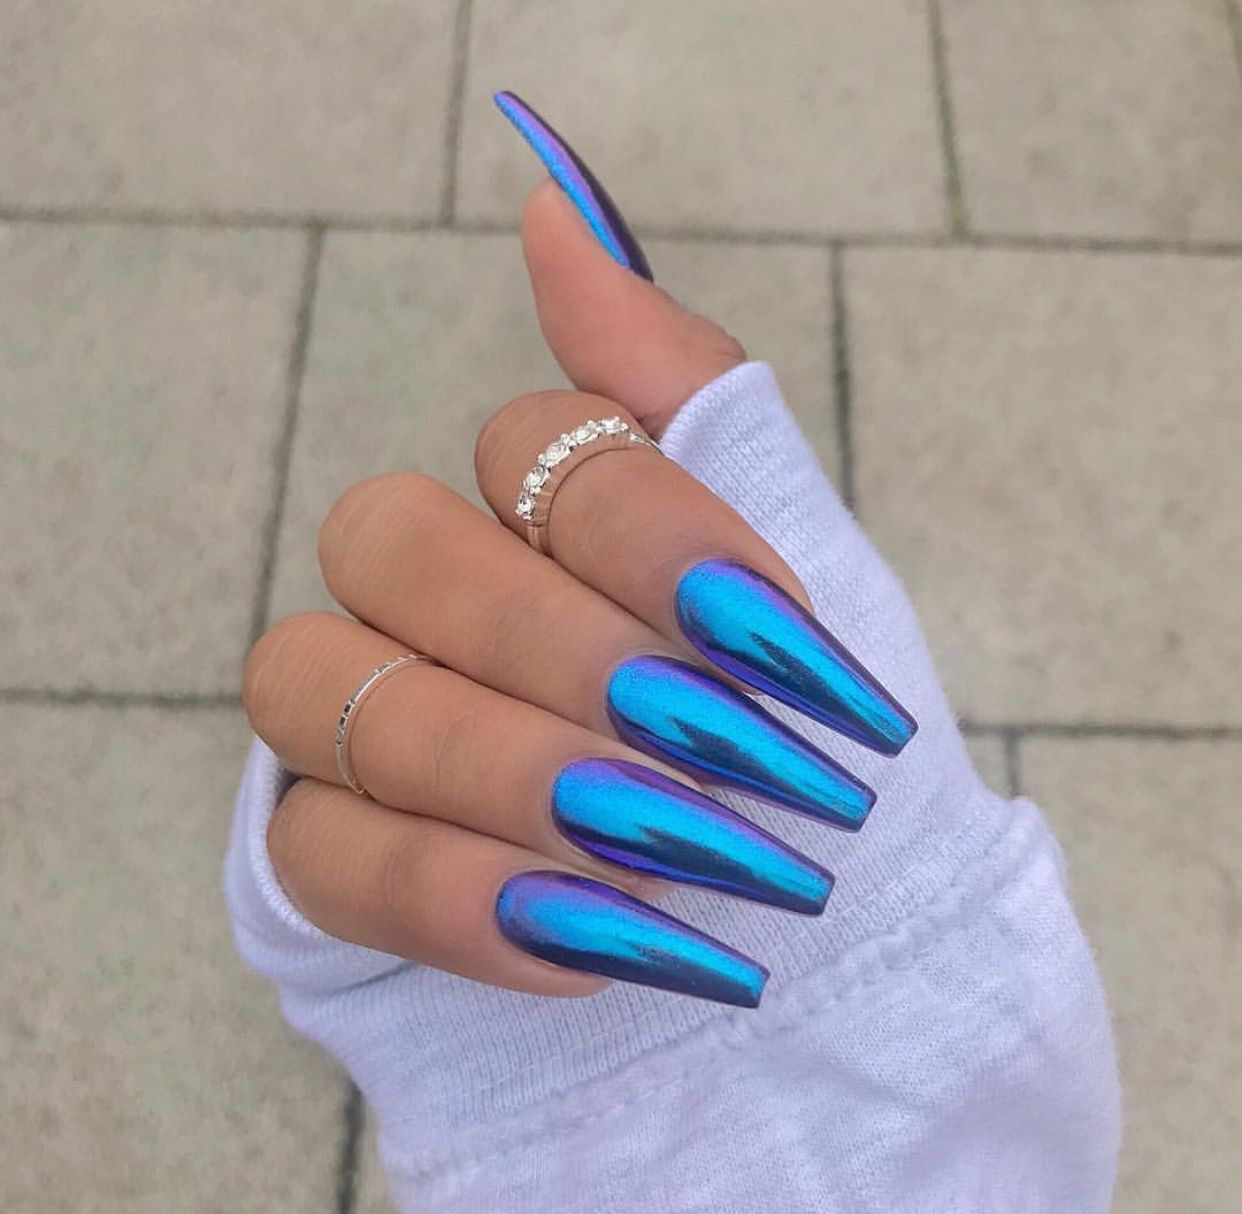 Holographic Blue Coffin Acrylic Nails Holographic Nails Coffin Nails Designs Blue Coffin Nails